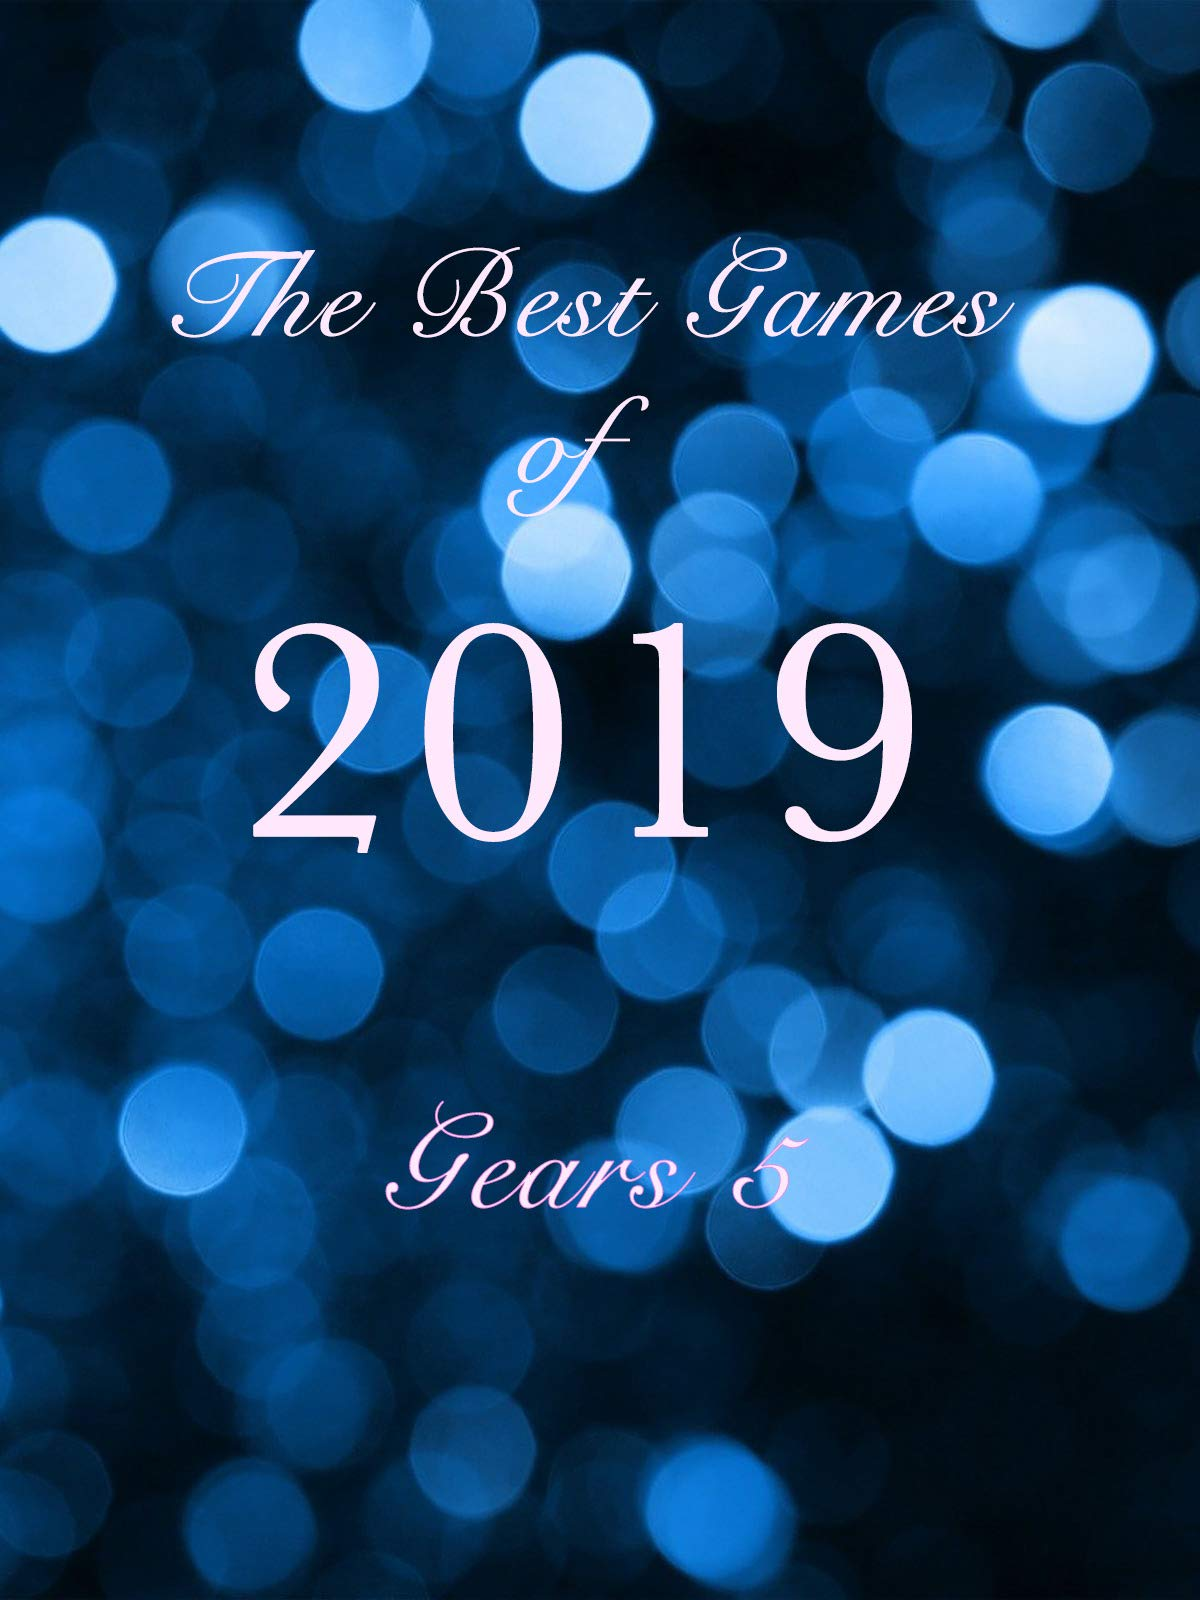 The Best Games of 2019 Gears 5